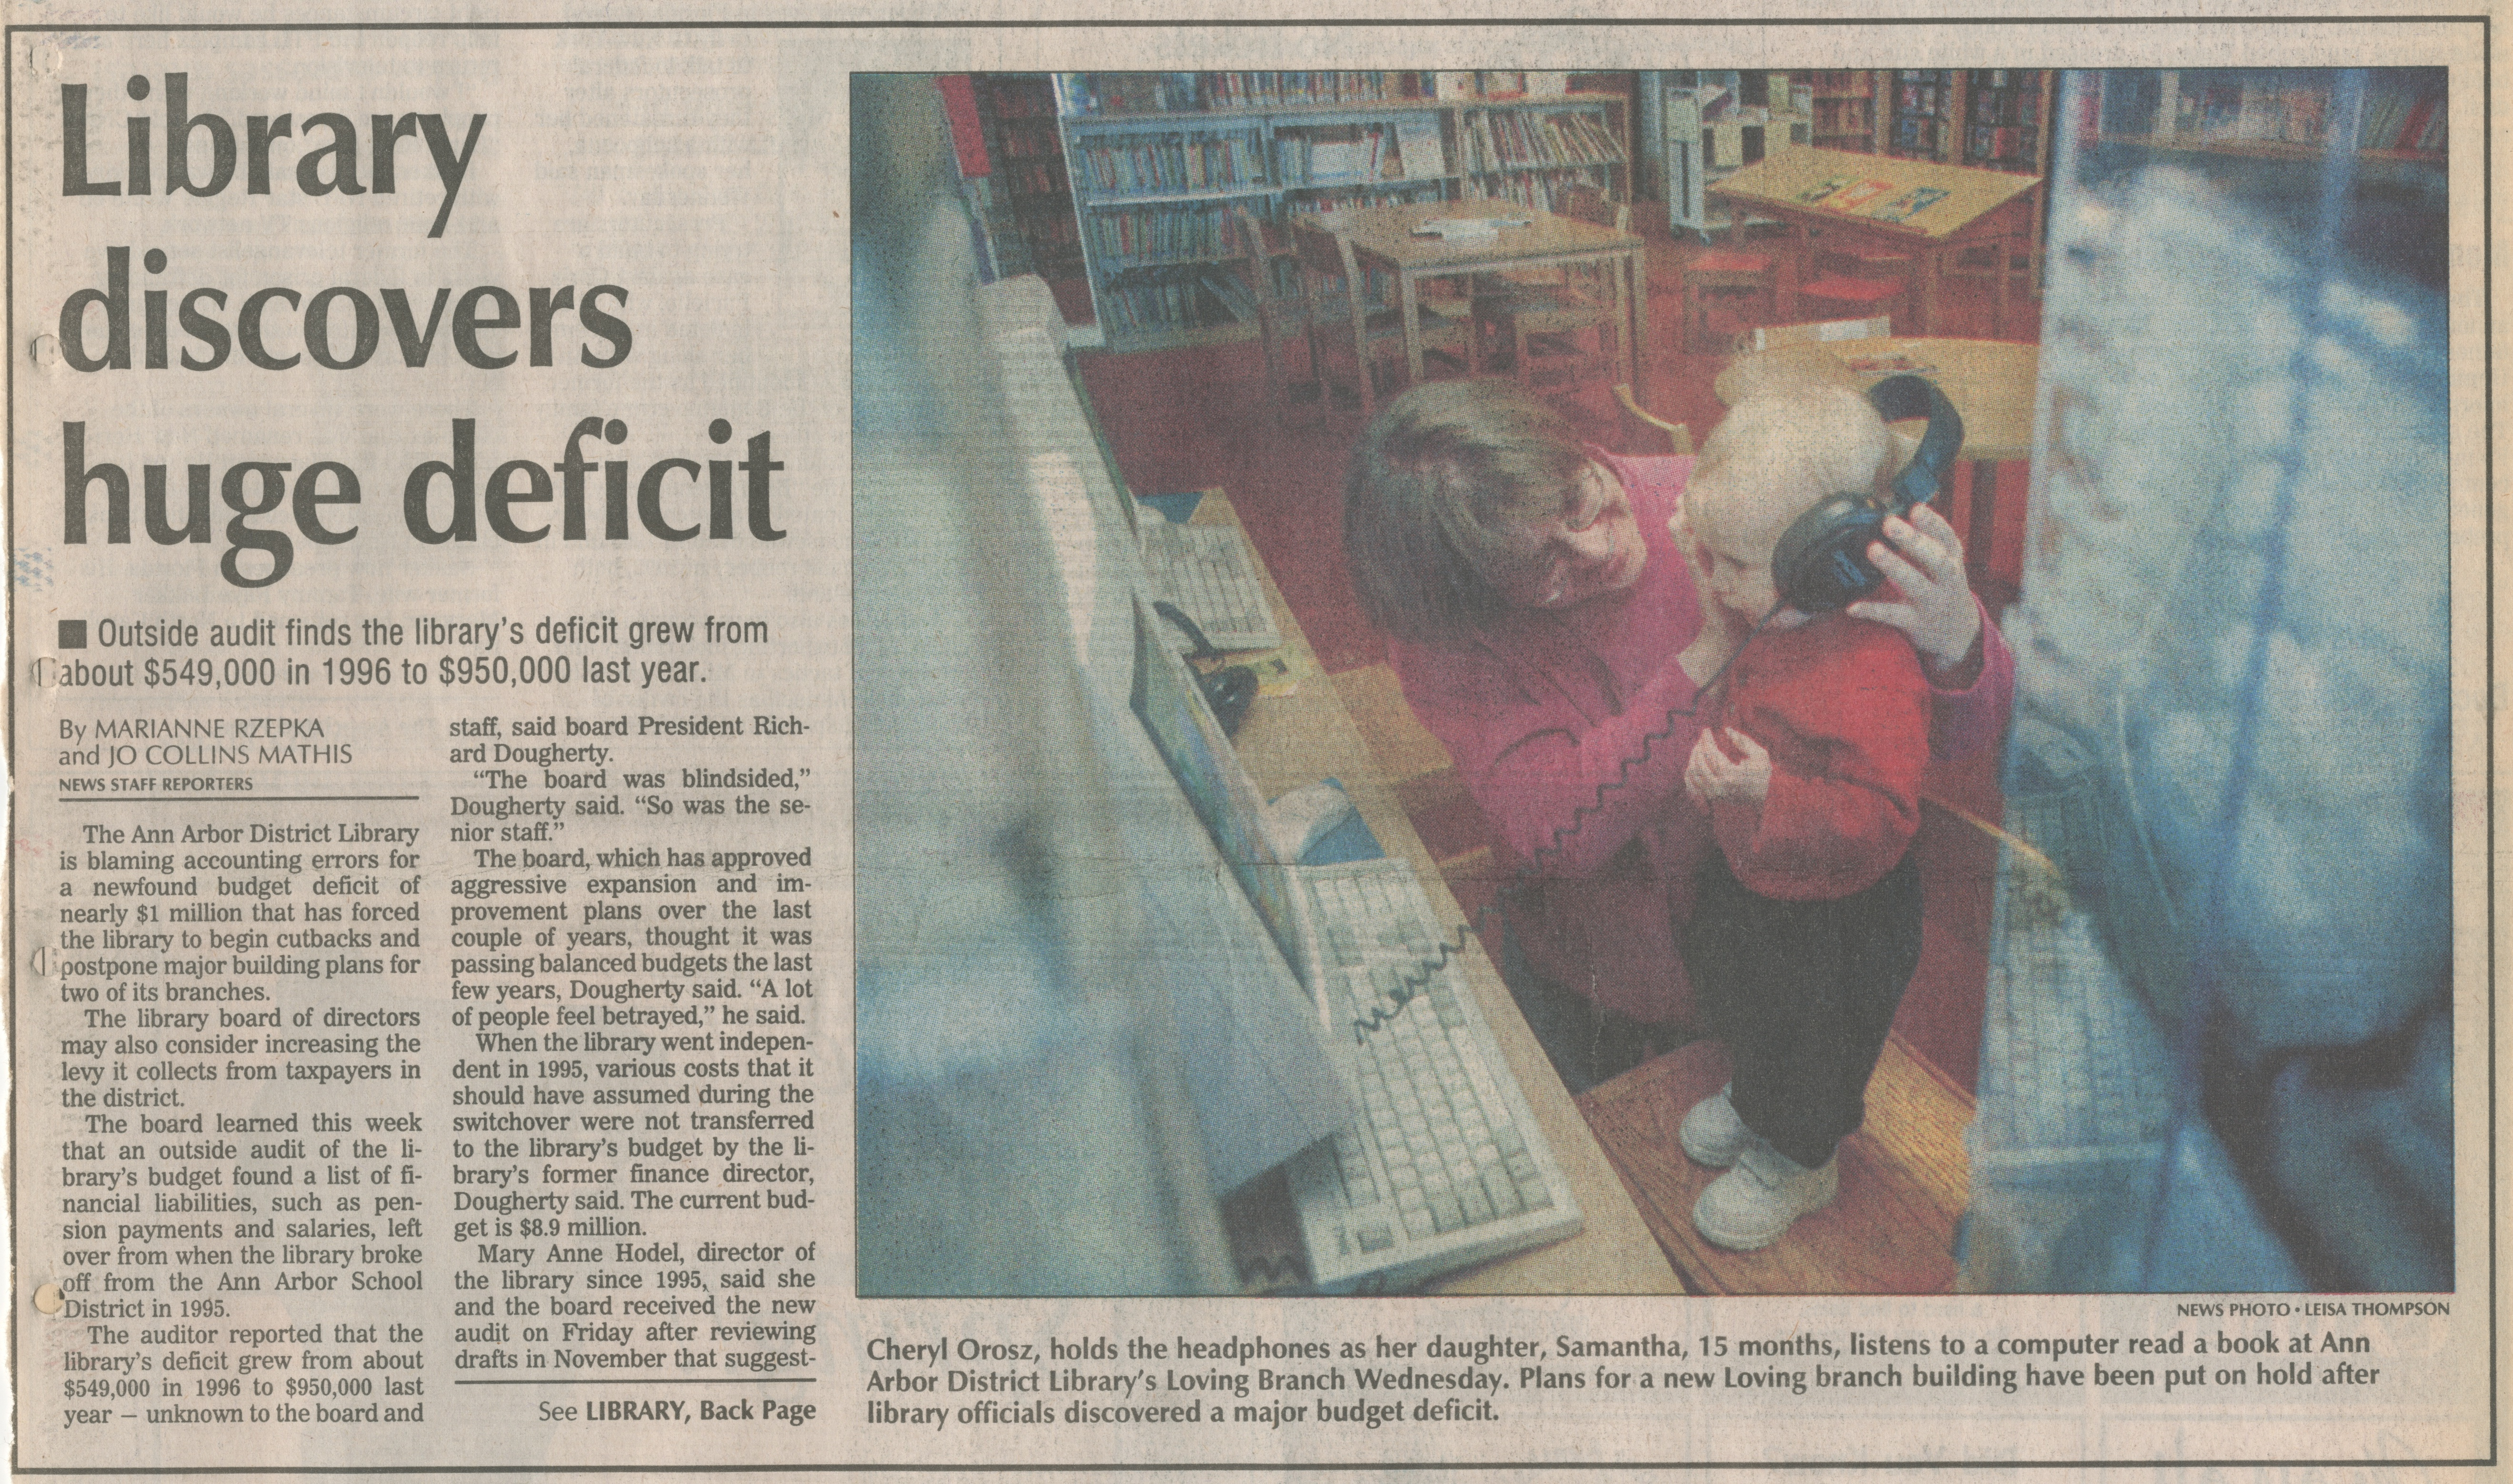 Library Discovers Huge Deficit image